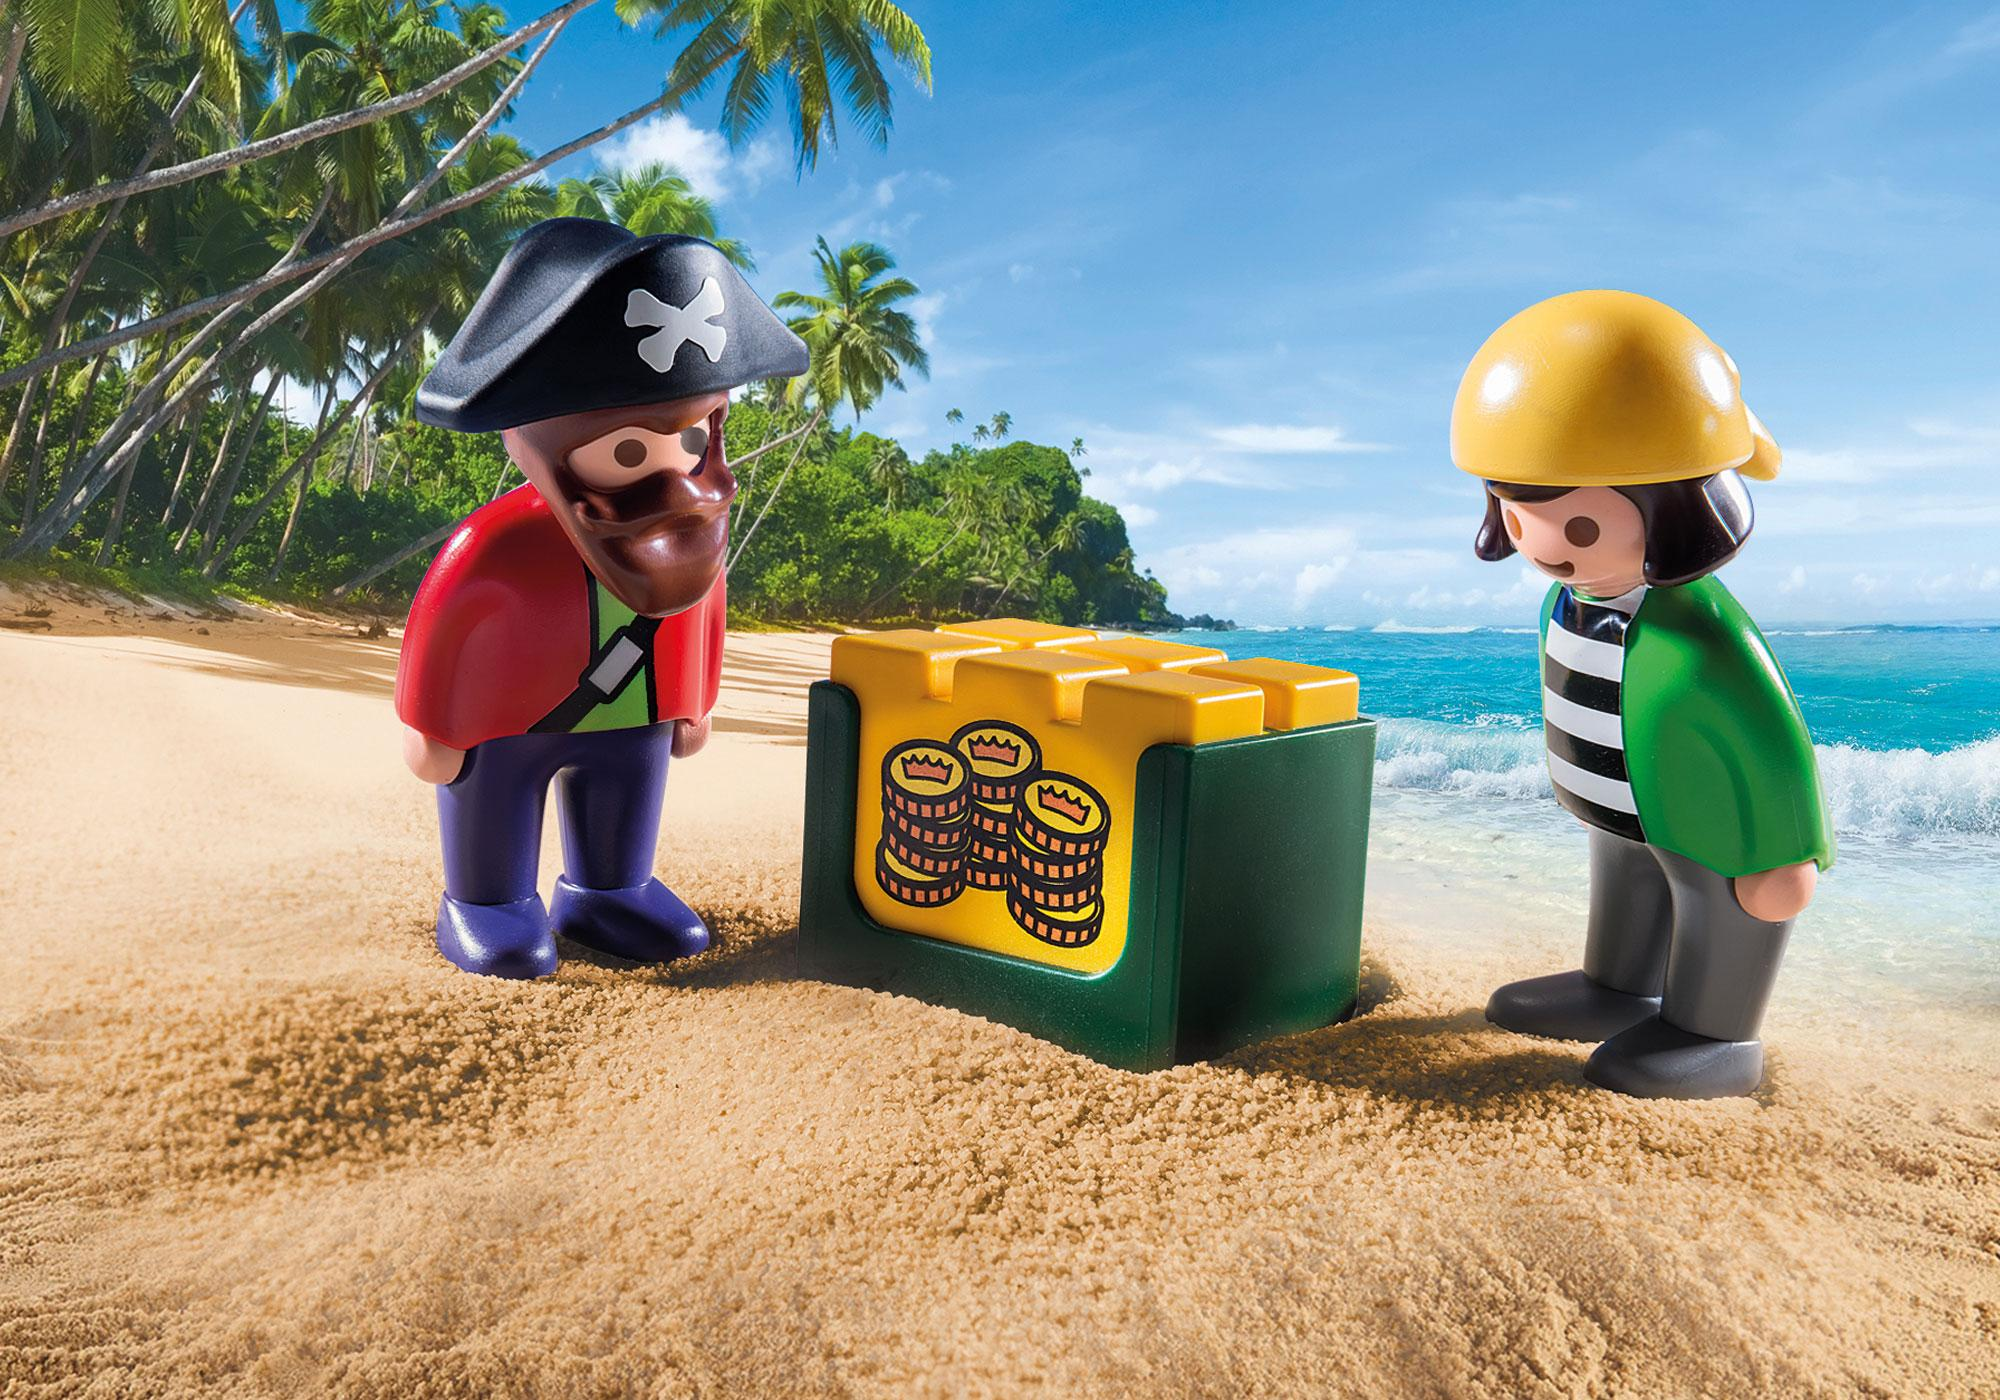 http://media.playmobil.com/i/playmobil/9118_product_extra1/Pirate Ship